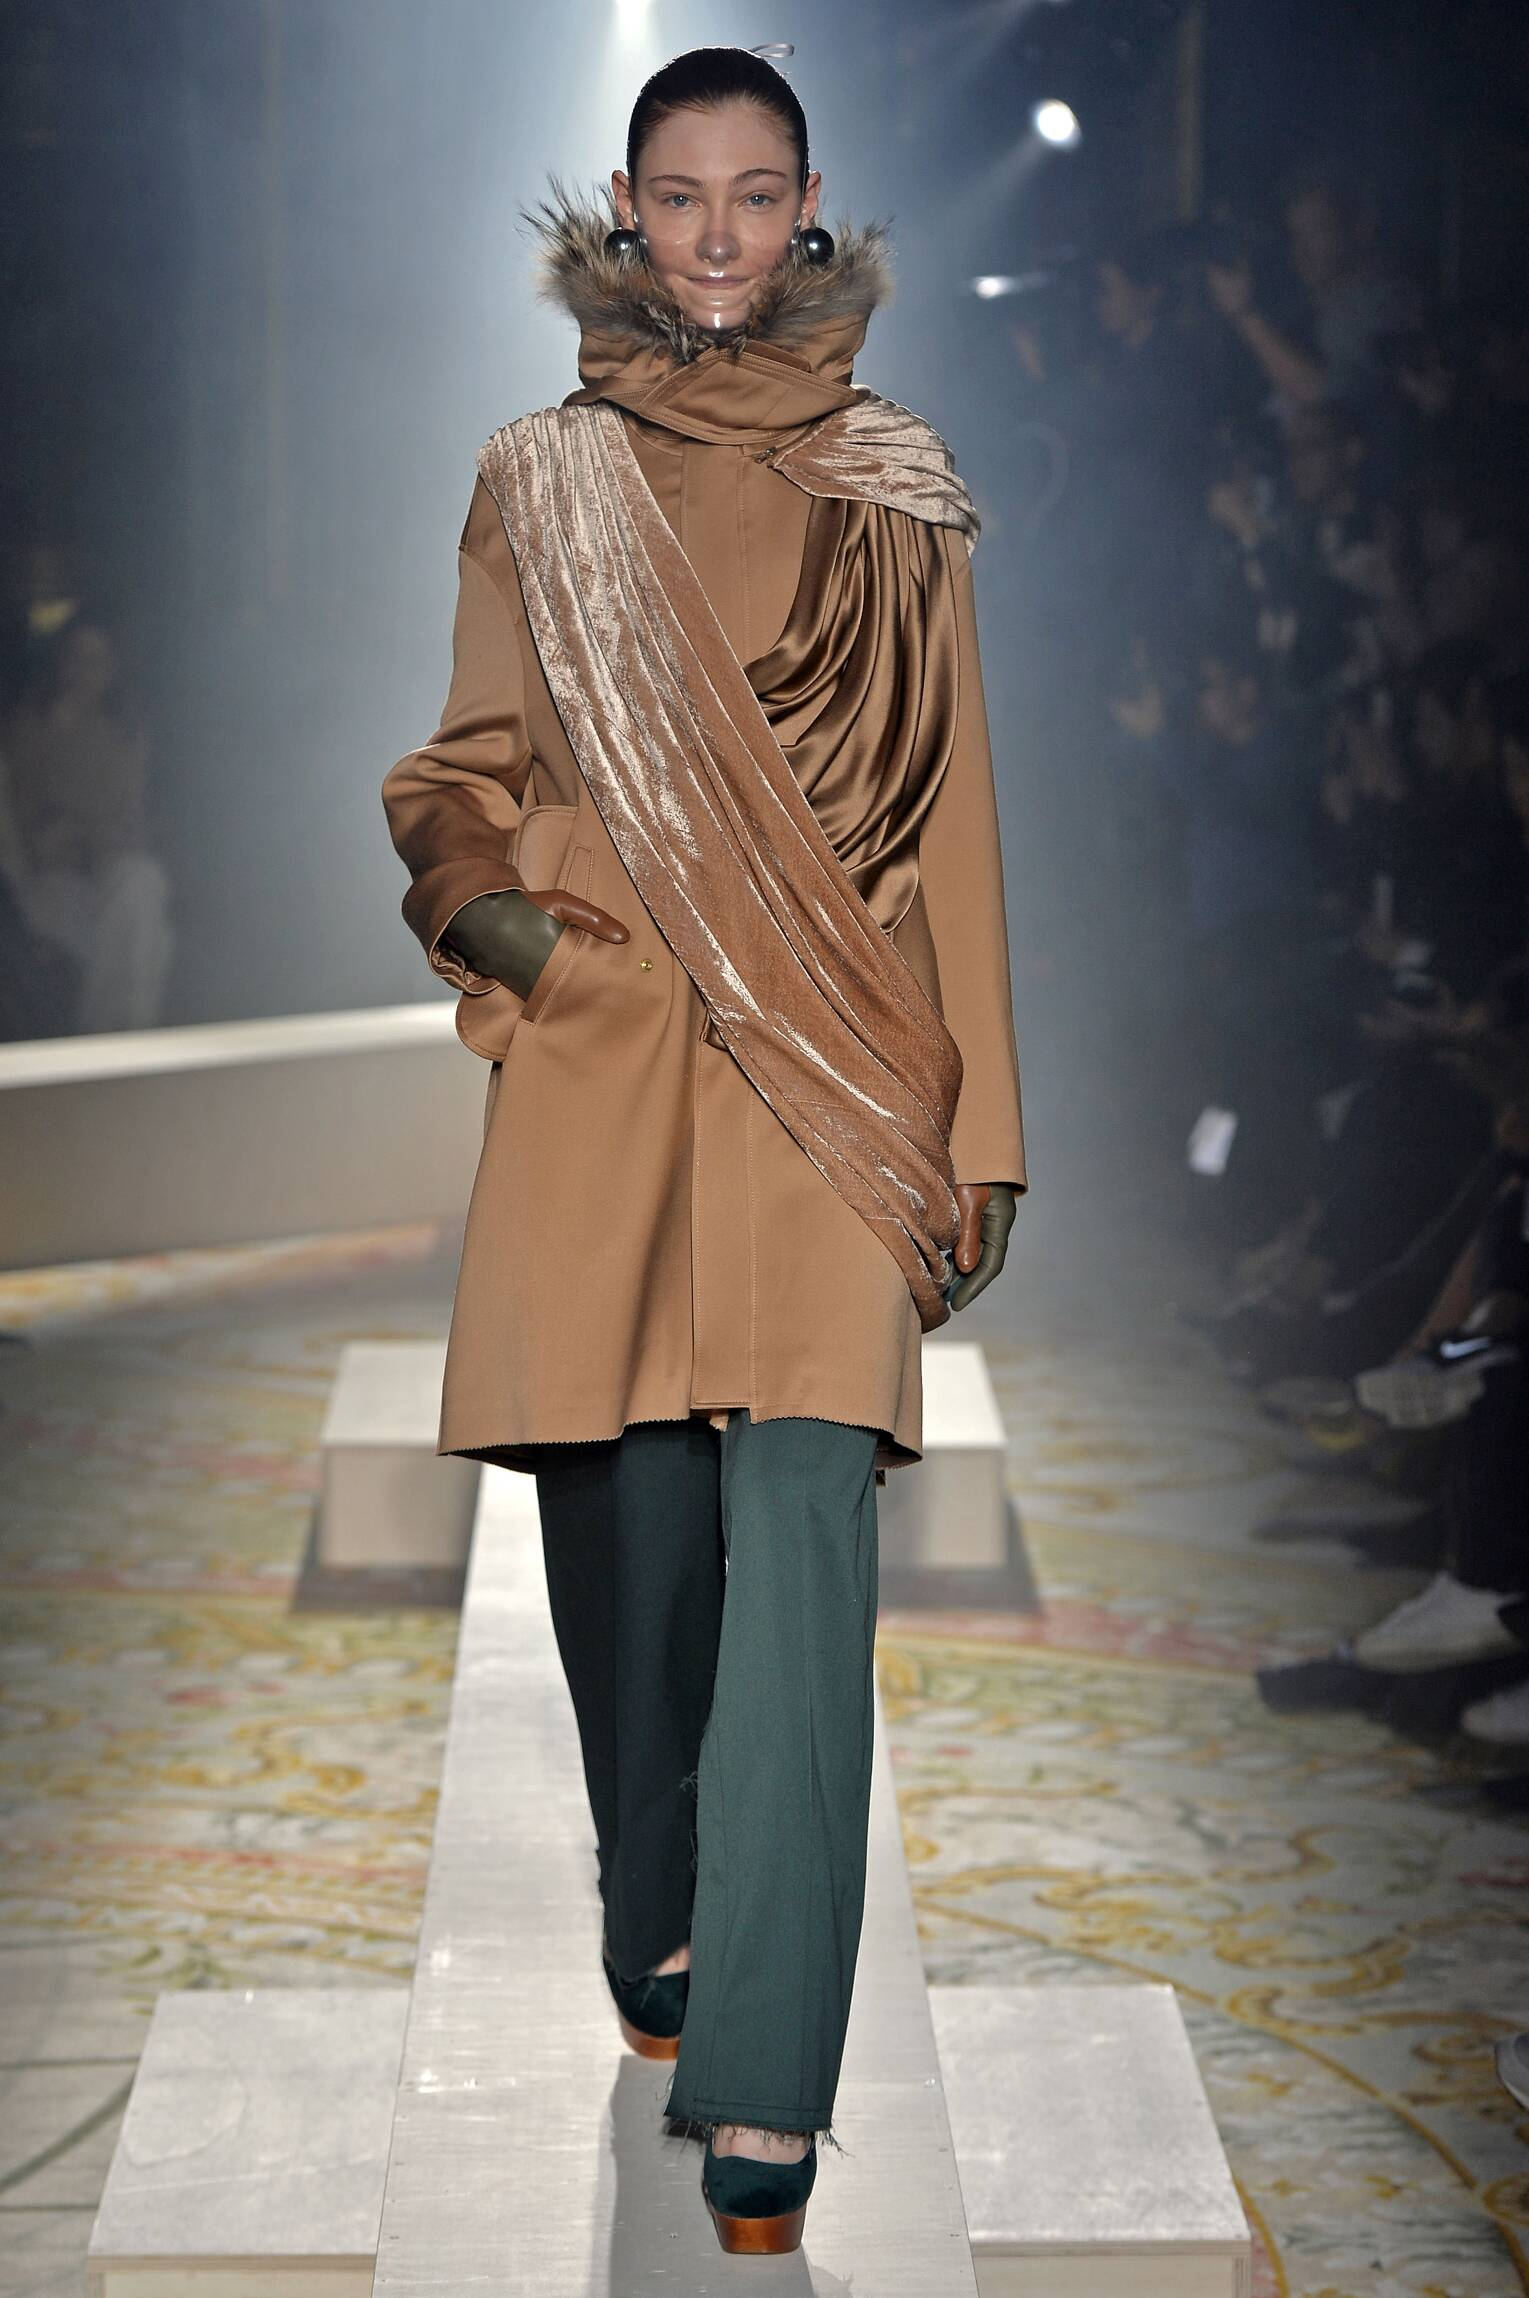 Winter 2015 Fashion Trends Undercover Collection